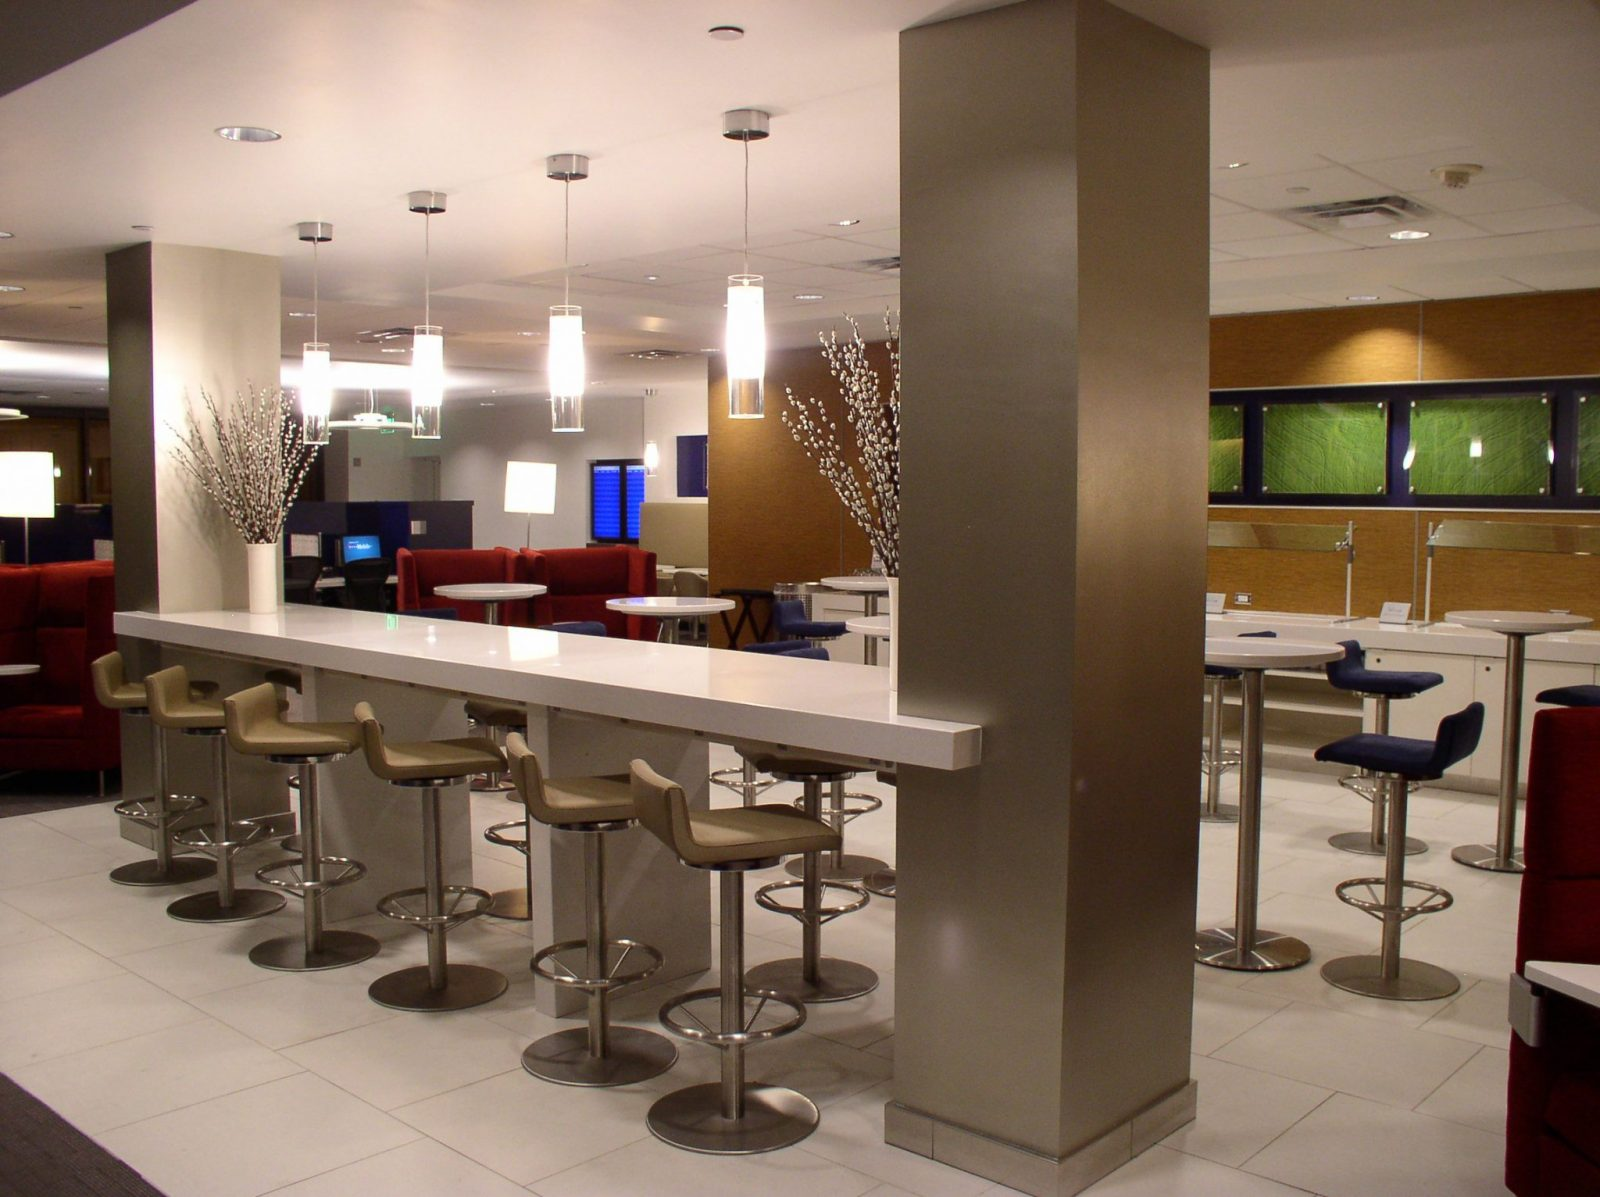 Lobby Countertop in a Commercial Setting